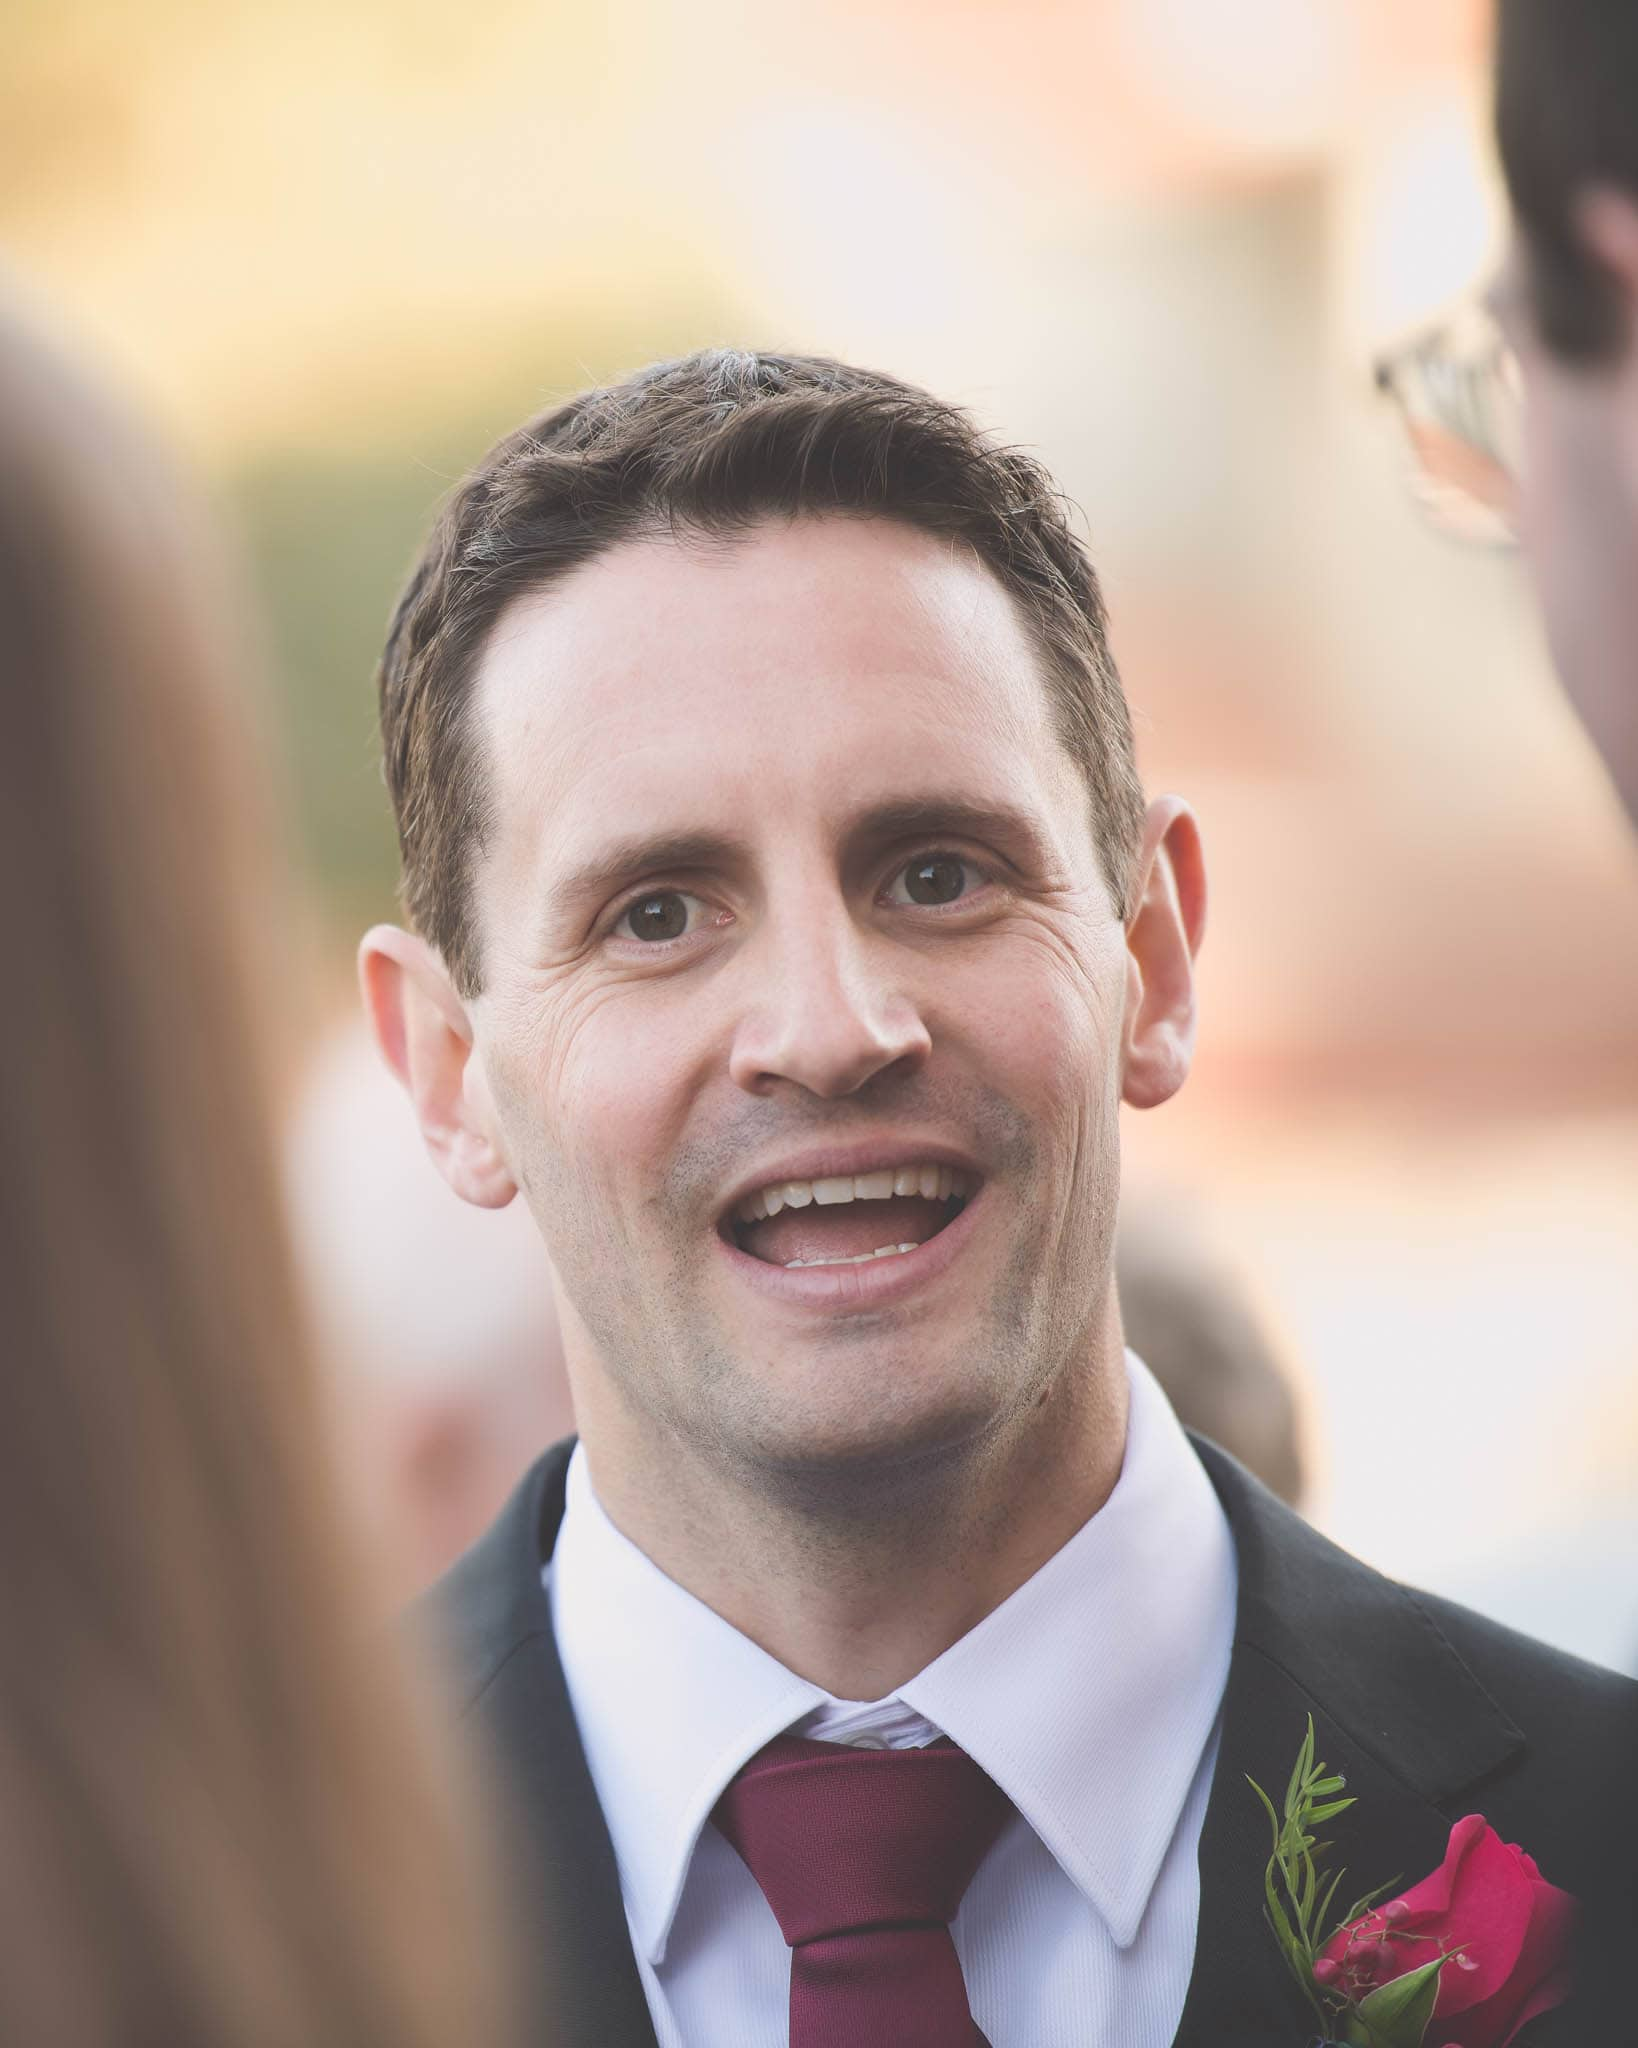 A groomsman smiles after a Melbourne wedding.